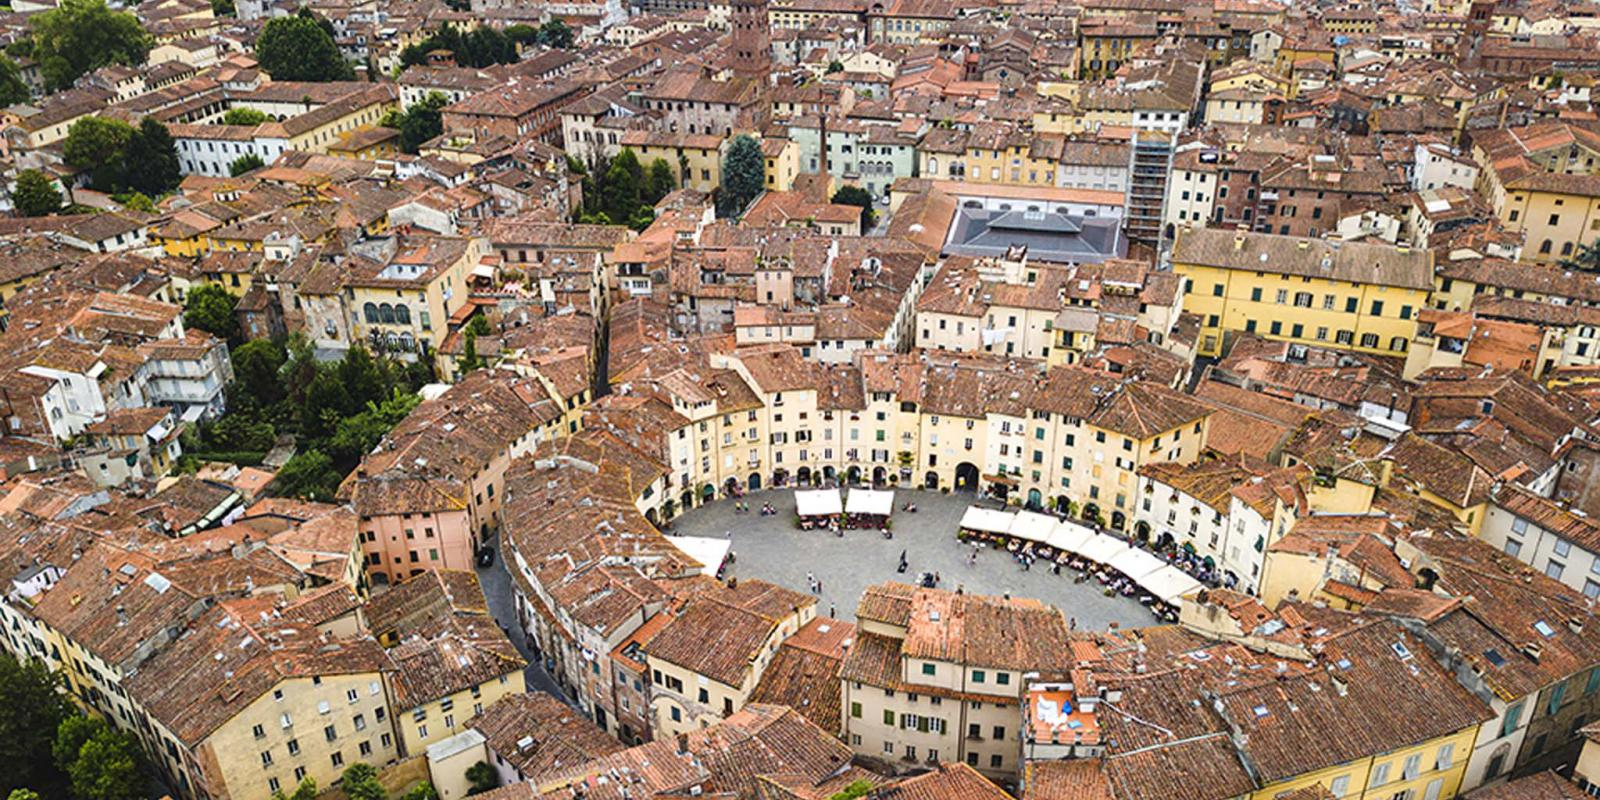 What to see in Lucca | Montescudaio Village | Cecina | Toscana